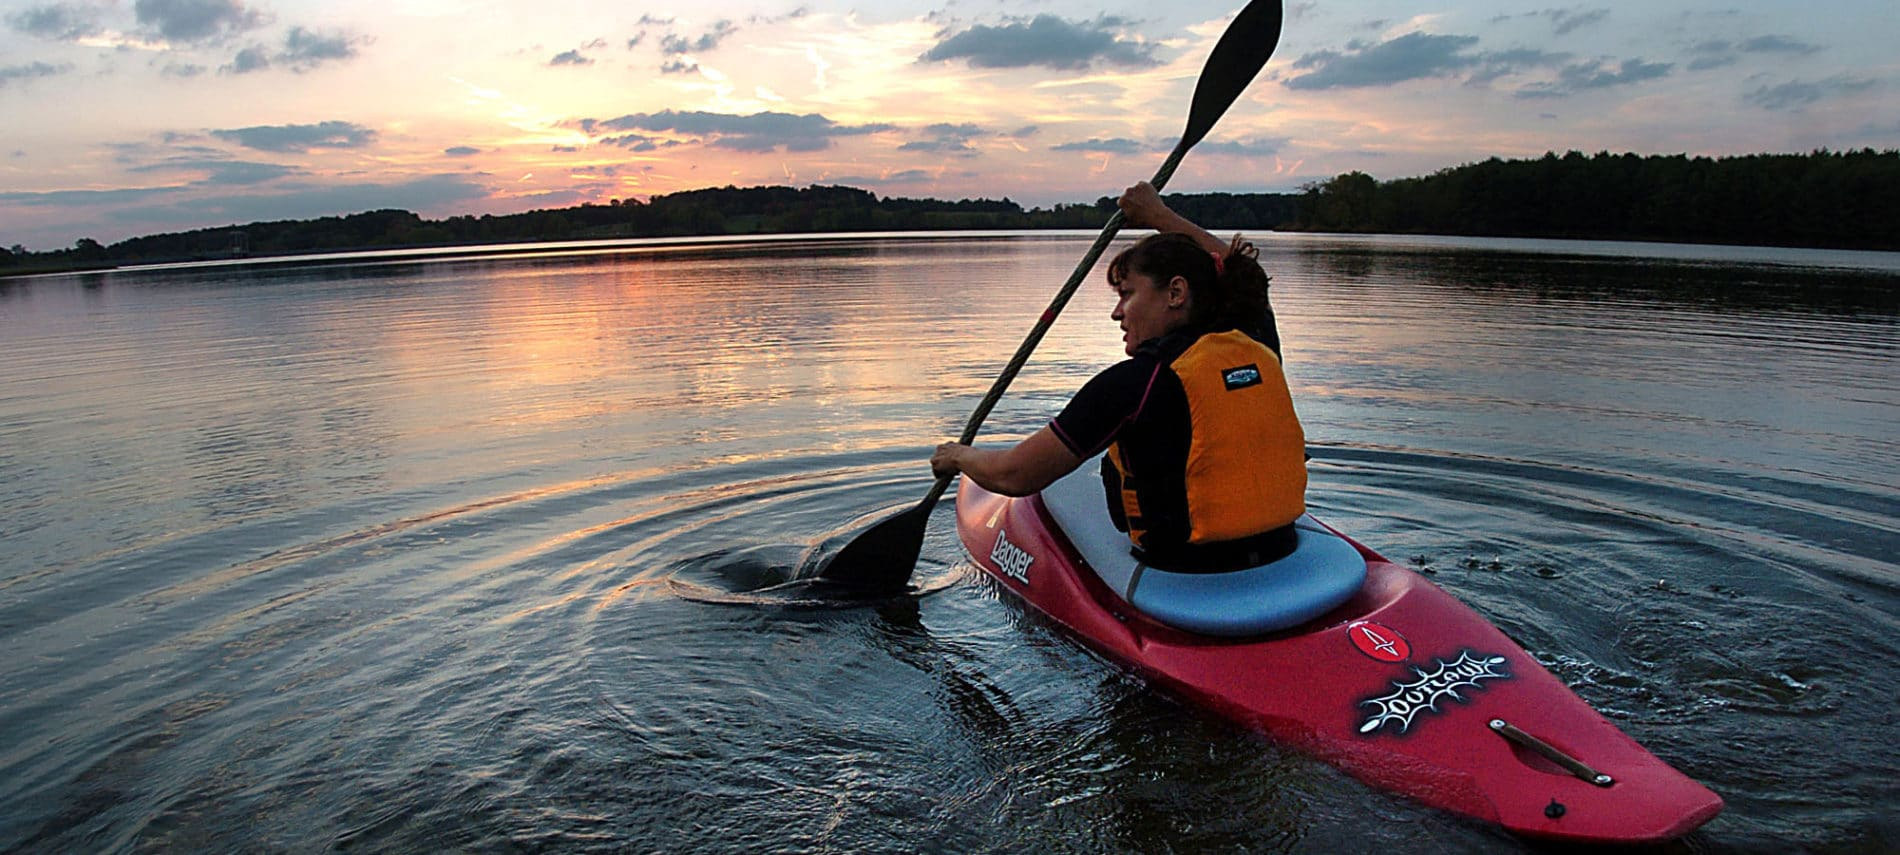 girl paddling a kayak on the river at sunset